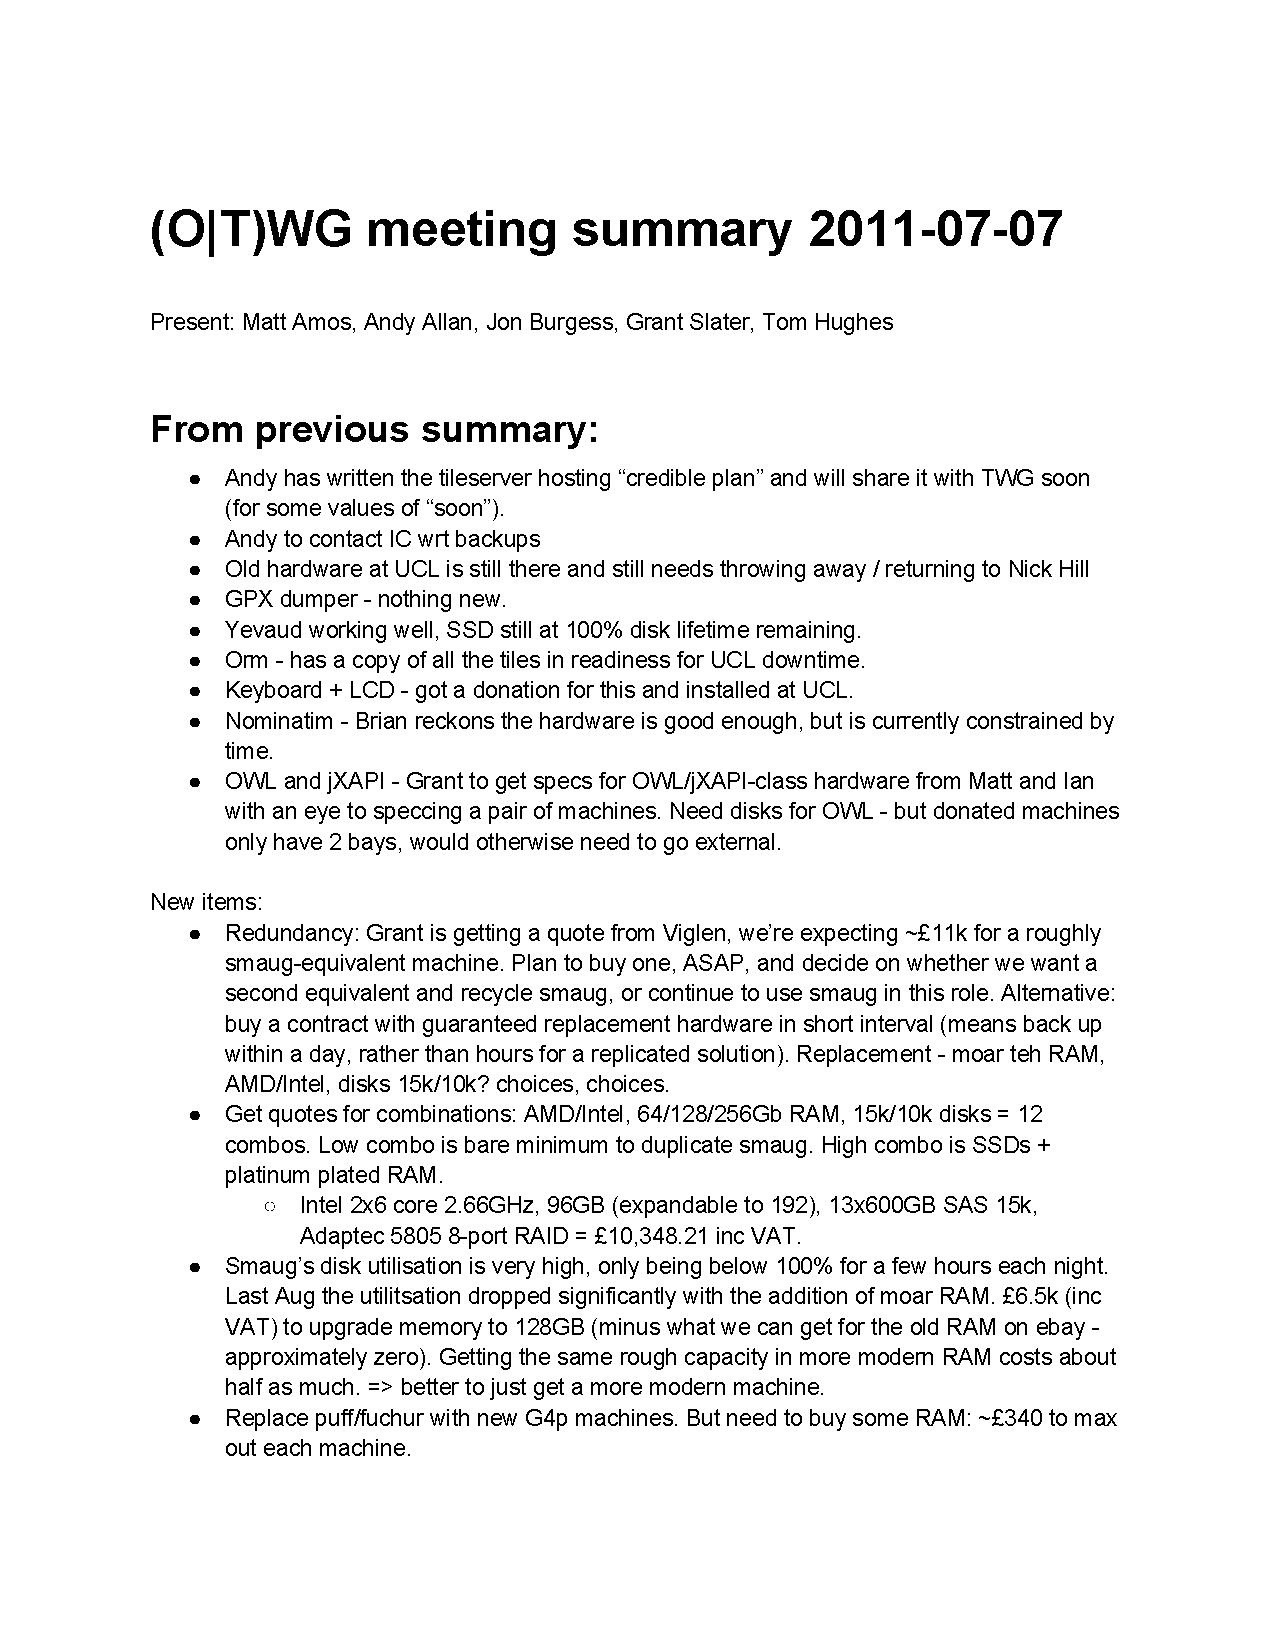 (T-O)WG meeting summary 2011-07-07.pdf